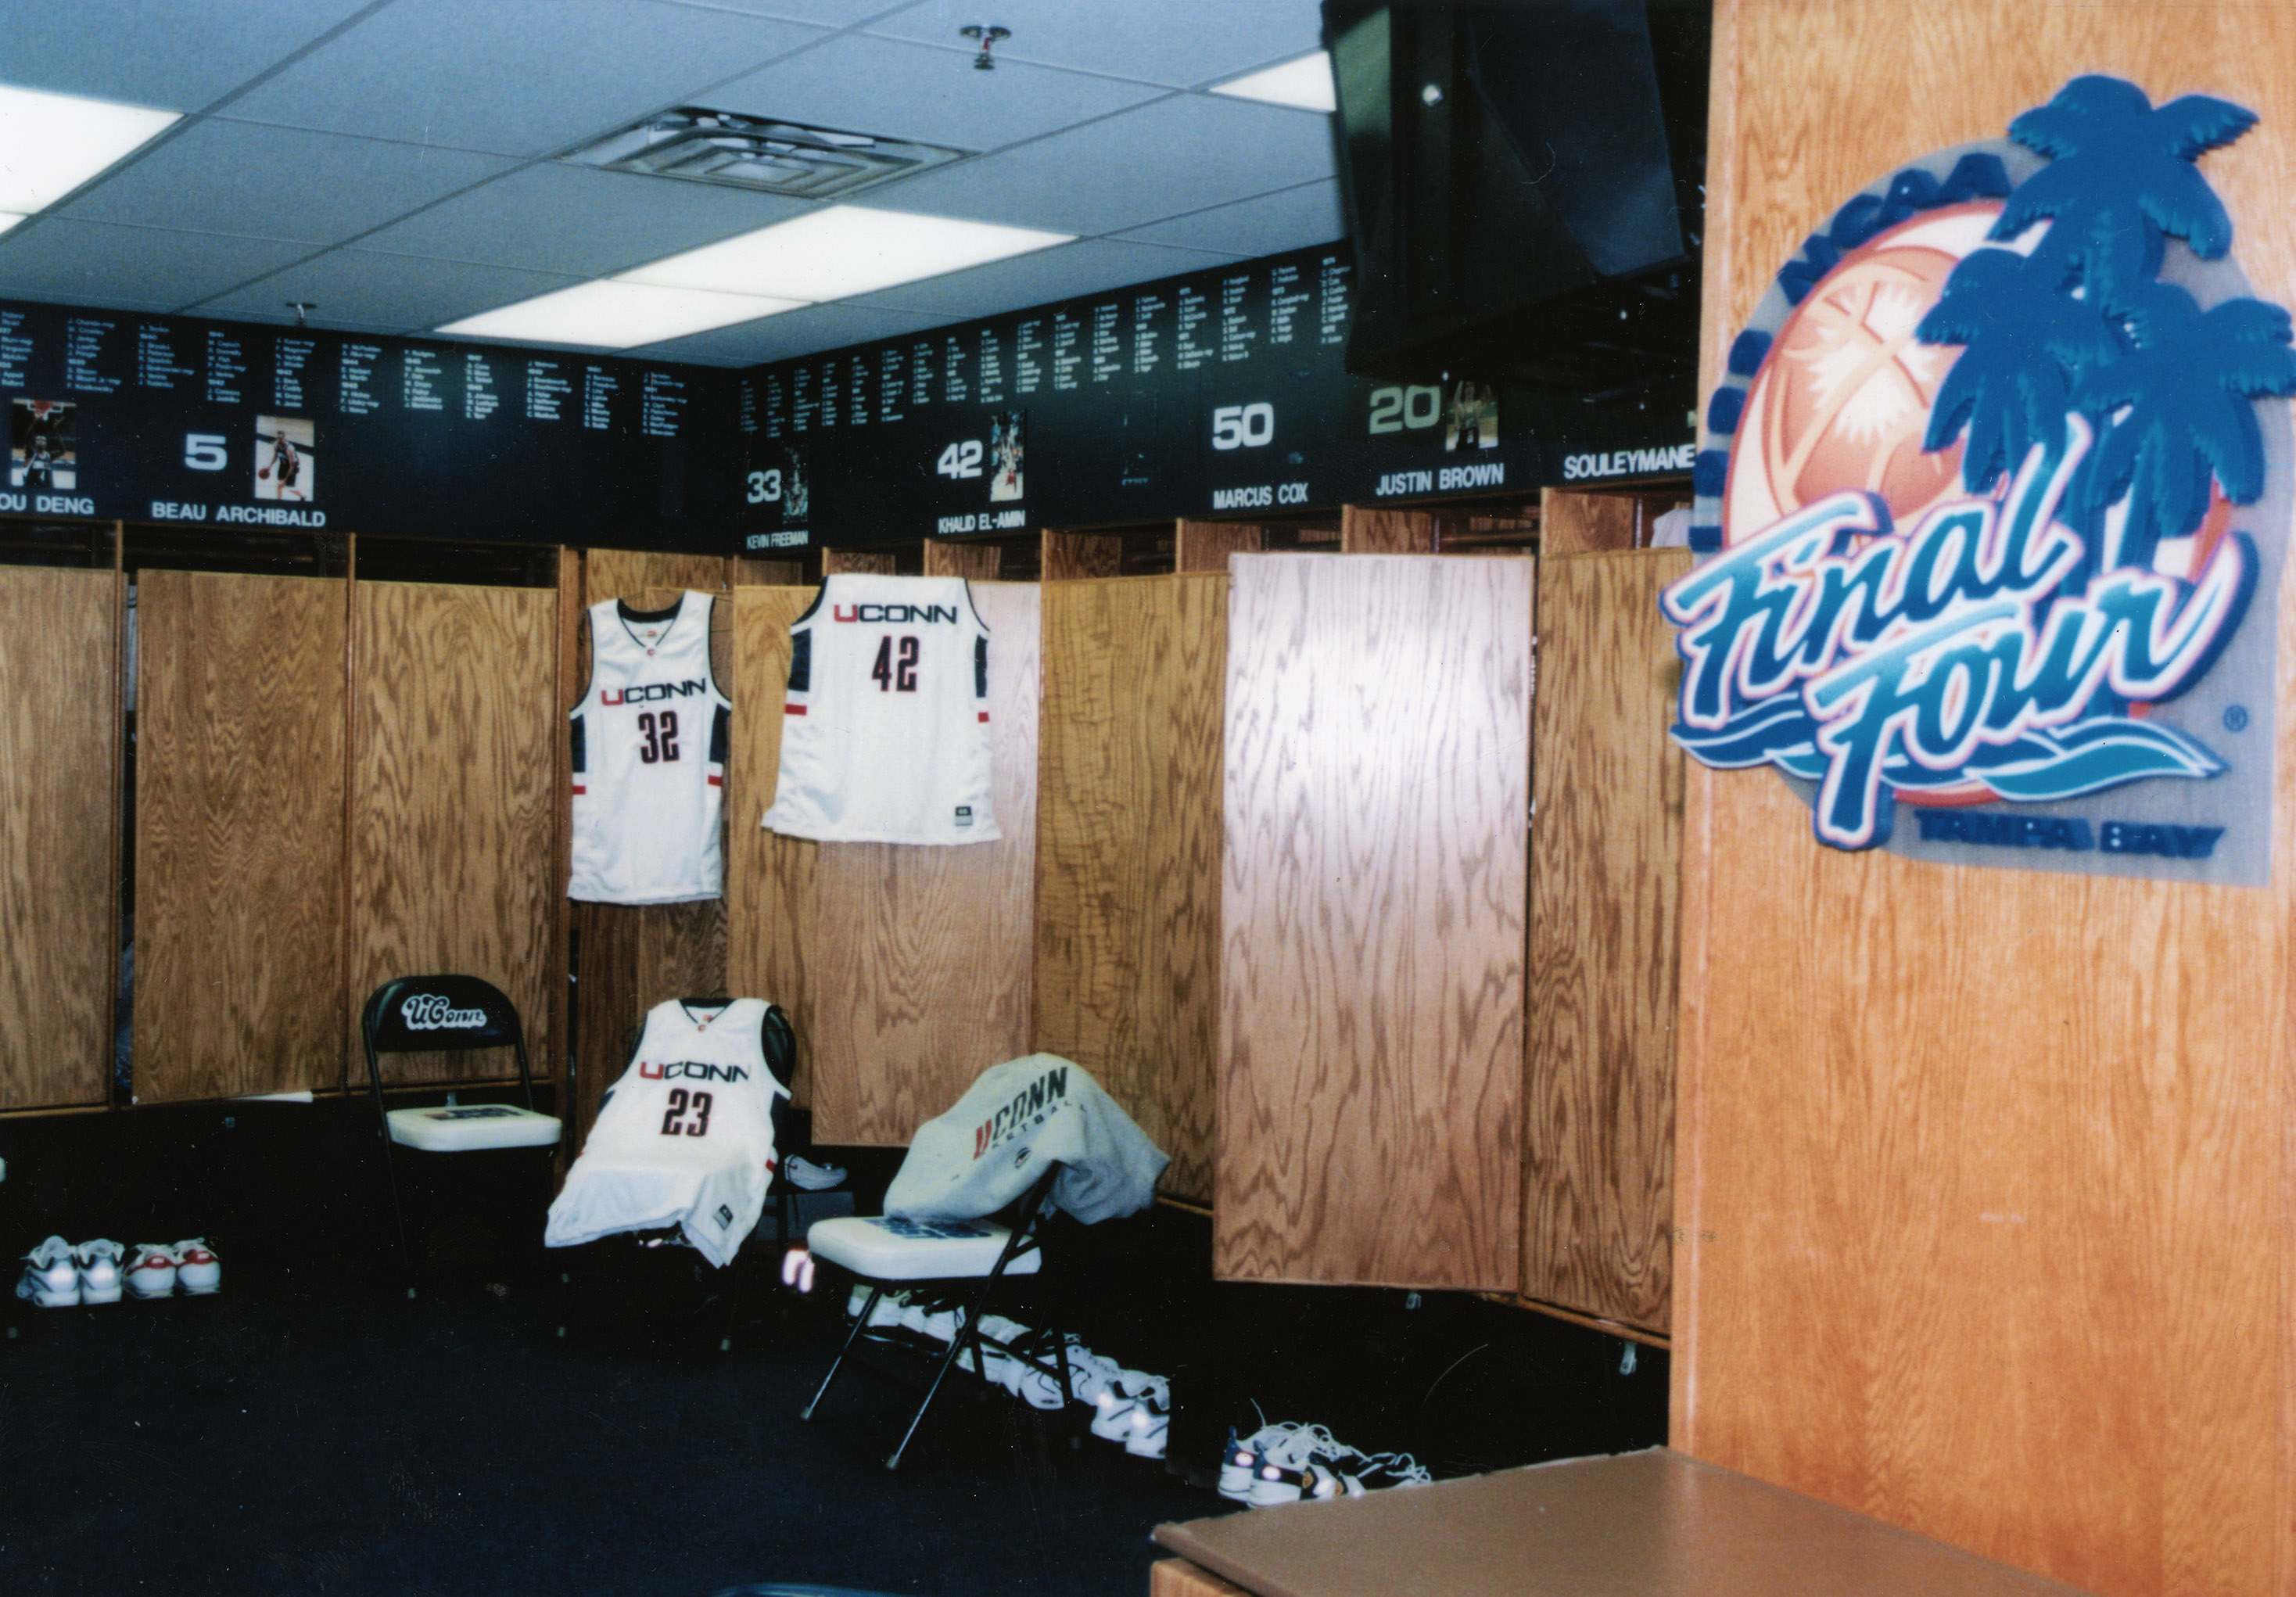 1999 Men's Basketball locker room